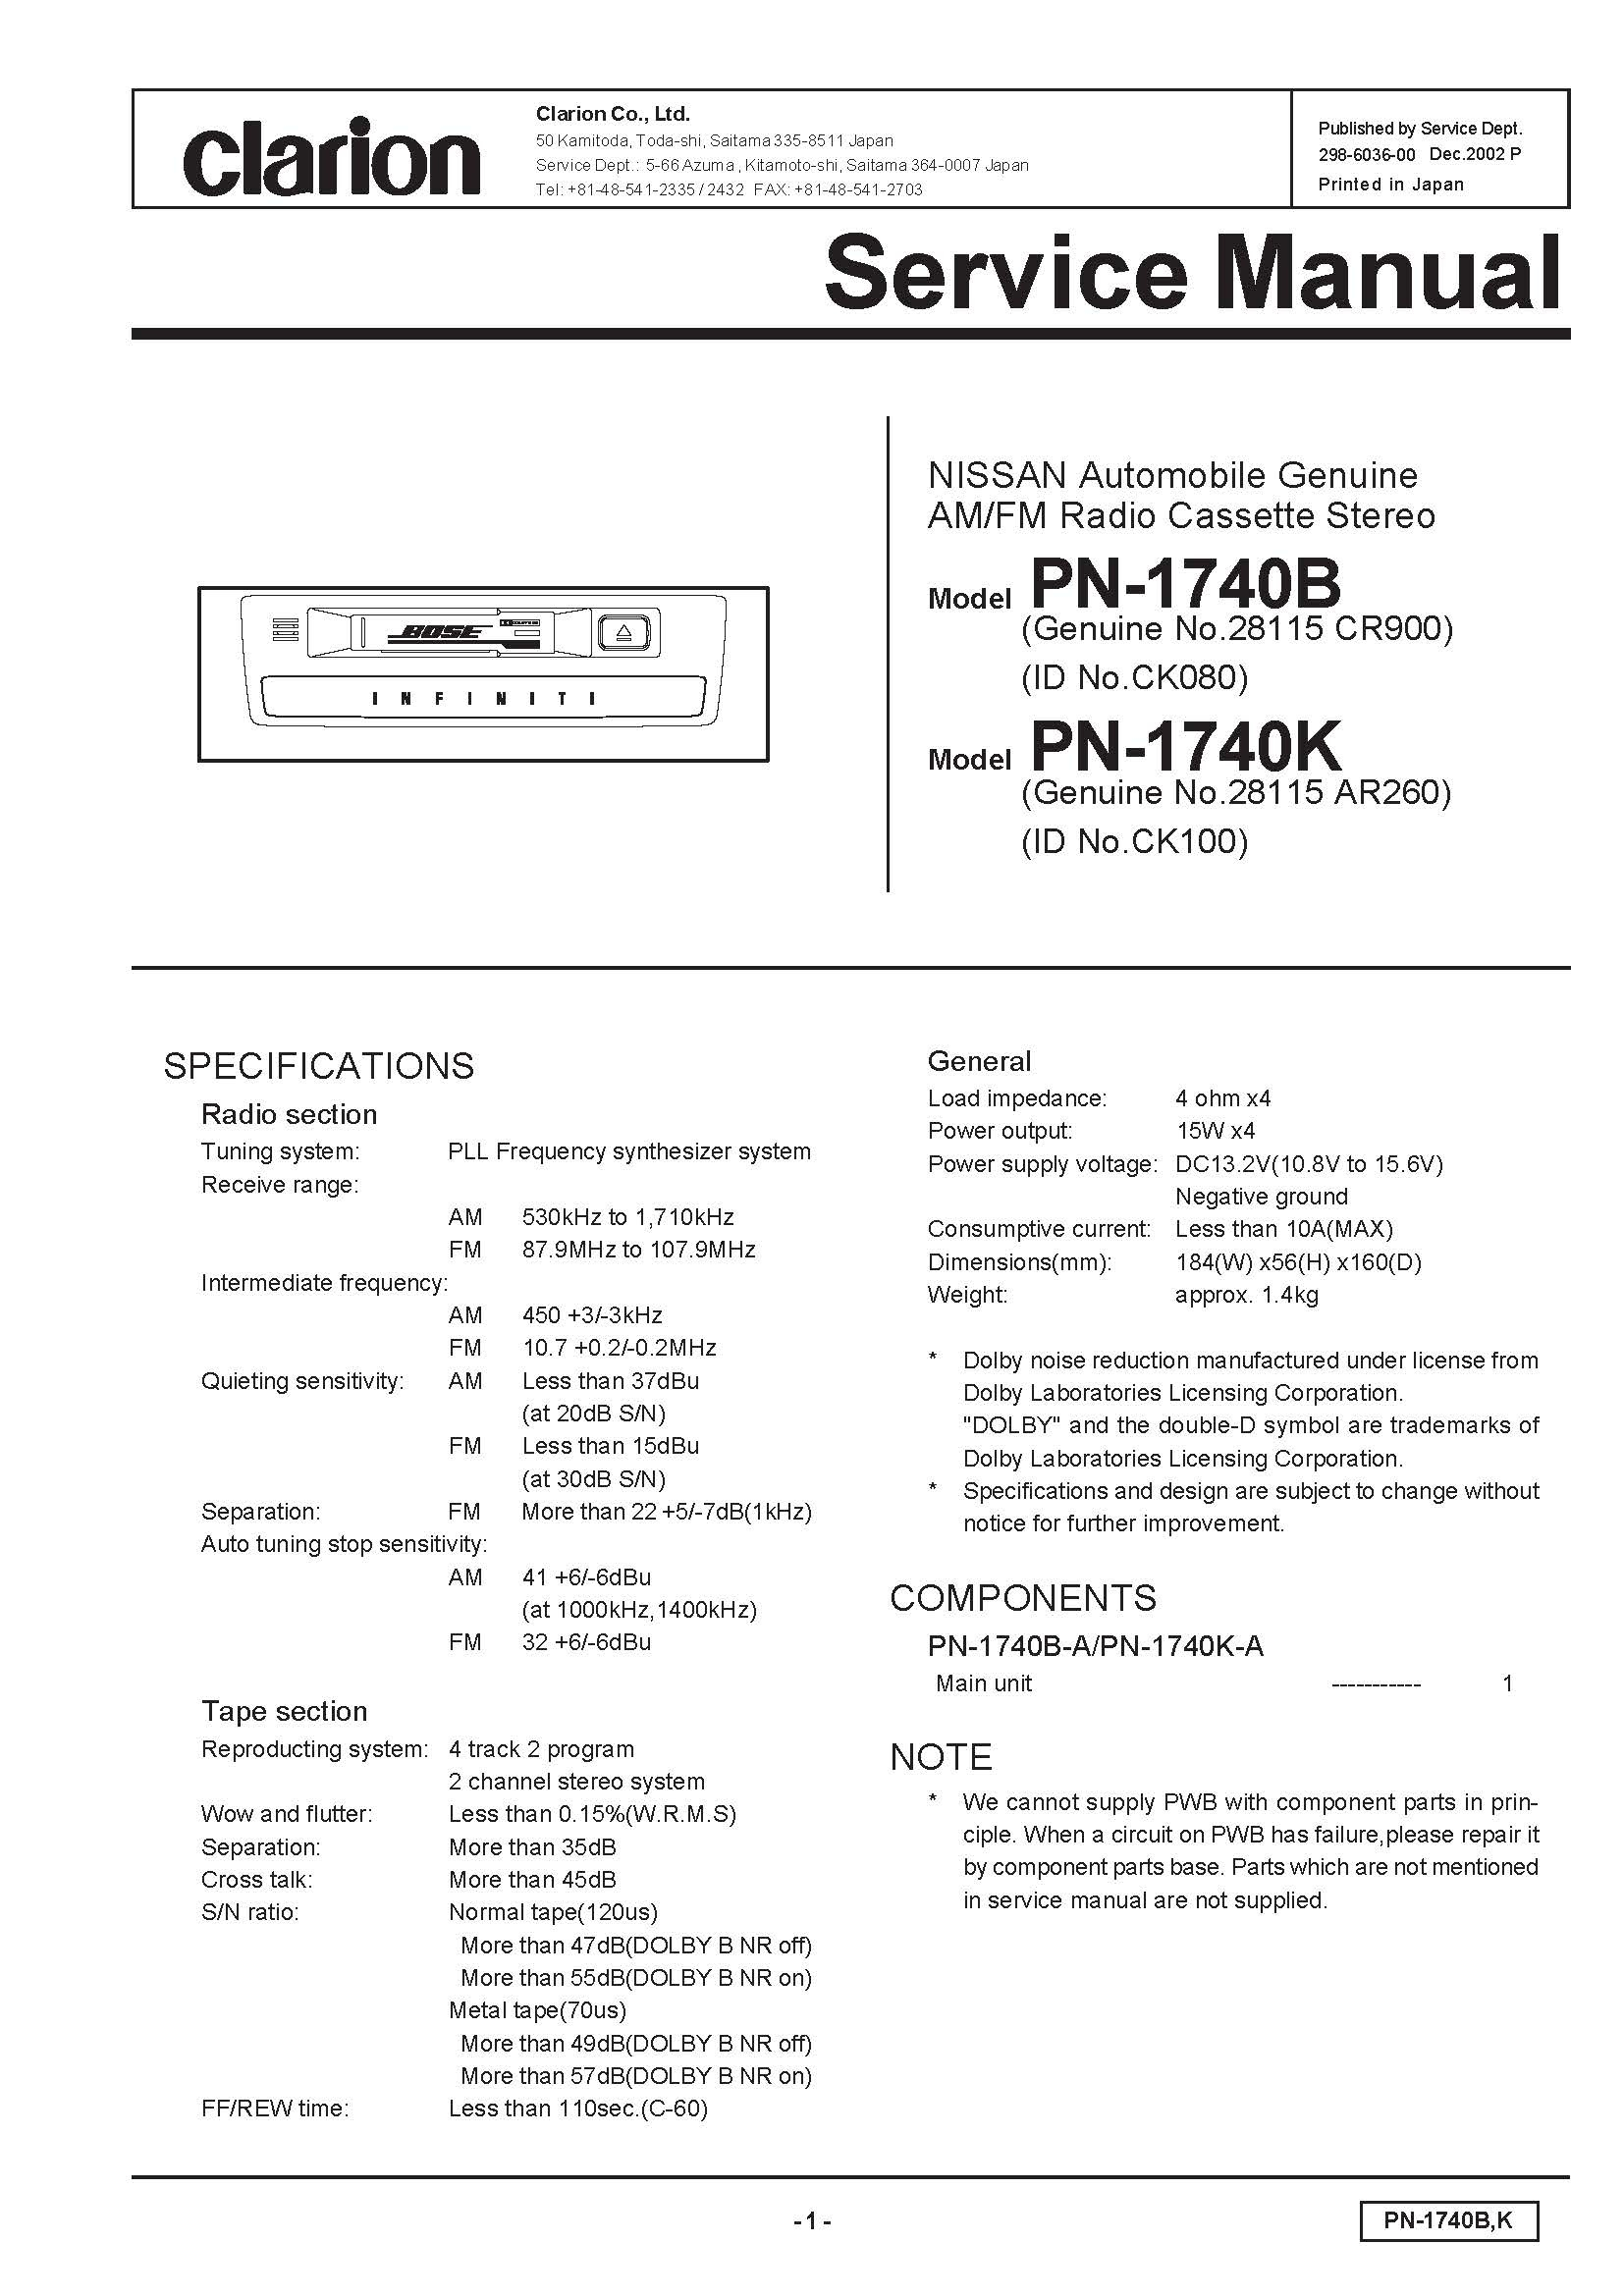 Wiring Diagram For Clarion Drb5475 Free Download Schematic Service Manual M3170 Harness At